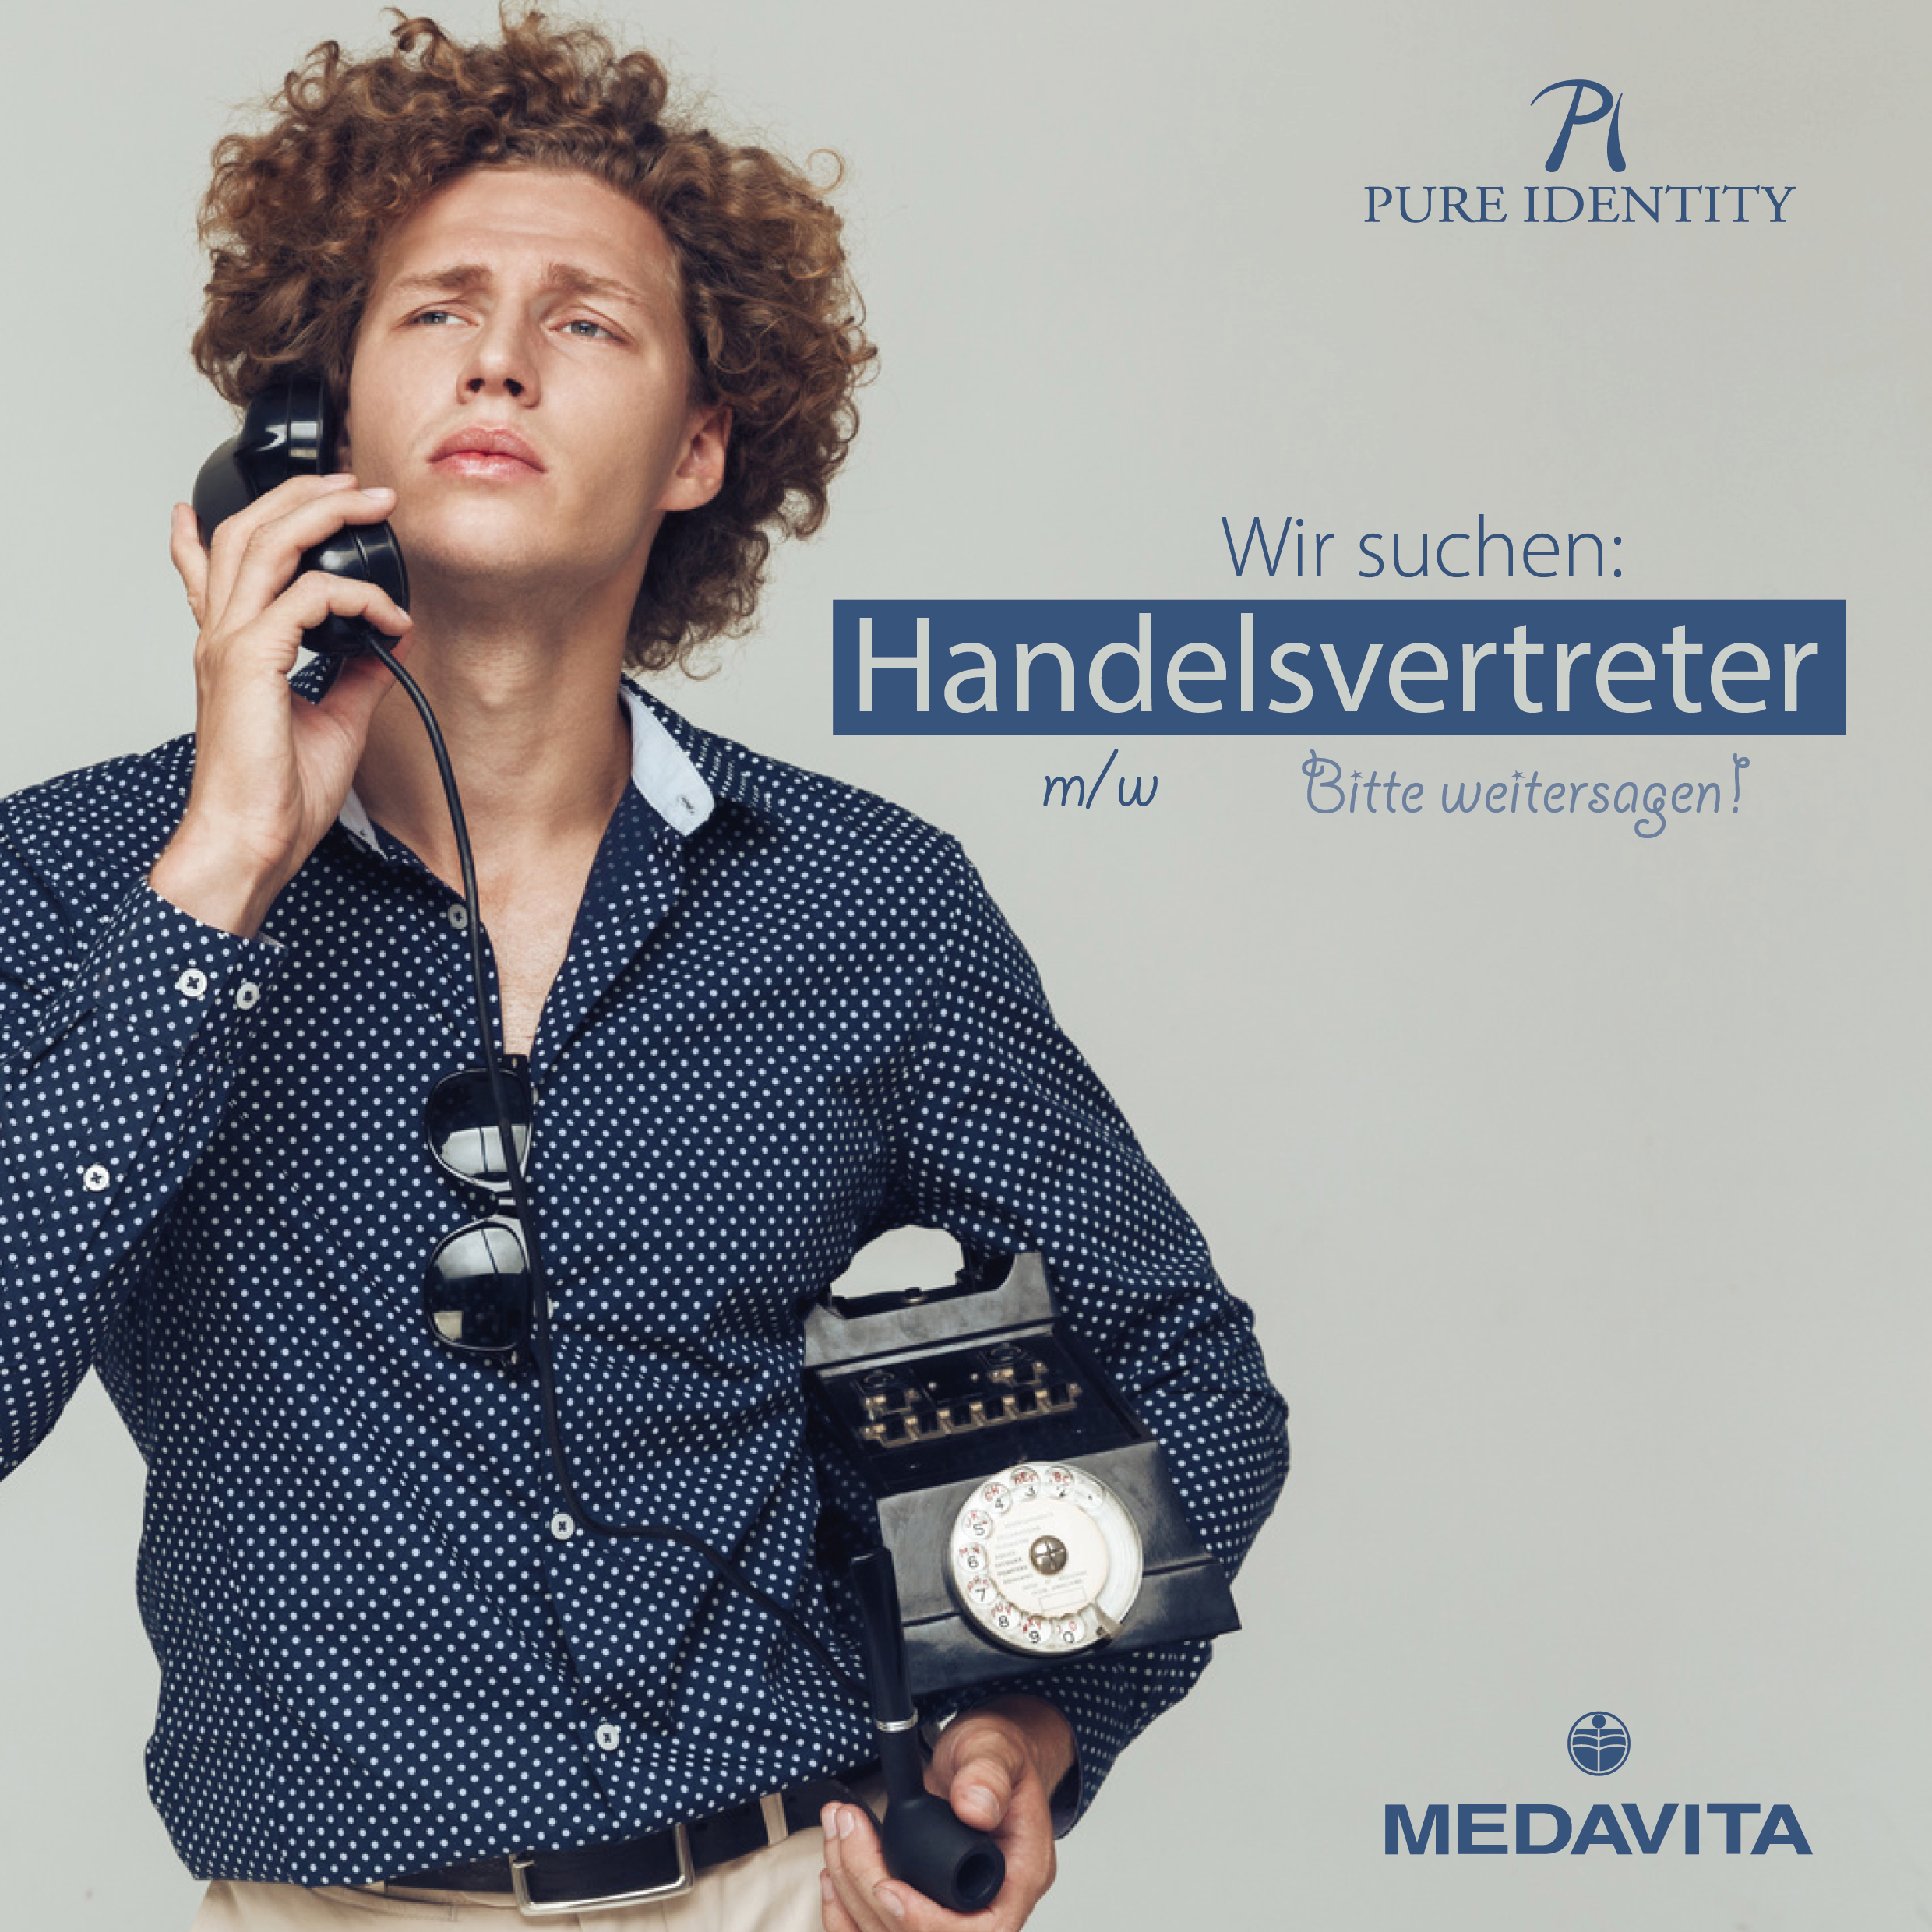 Handelsvertreter2018-6